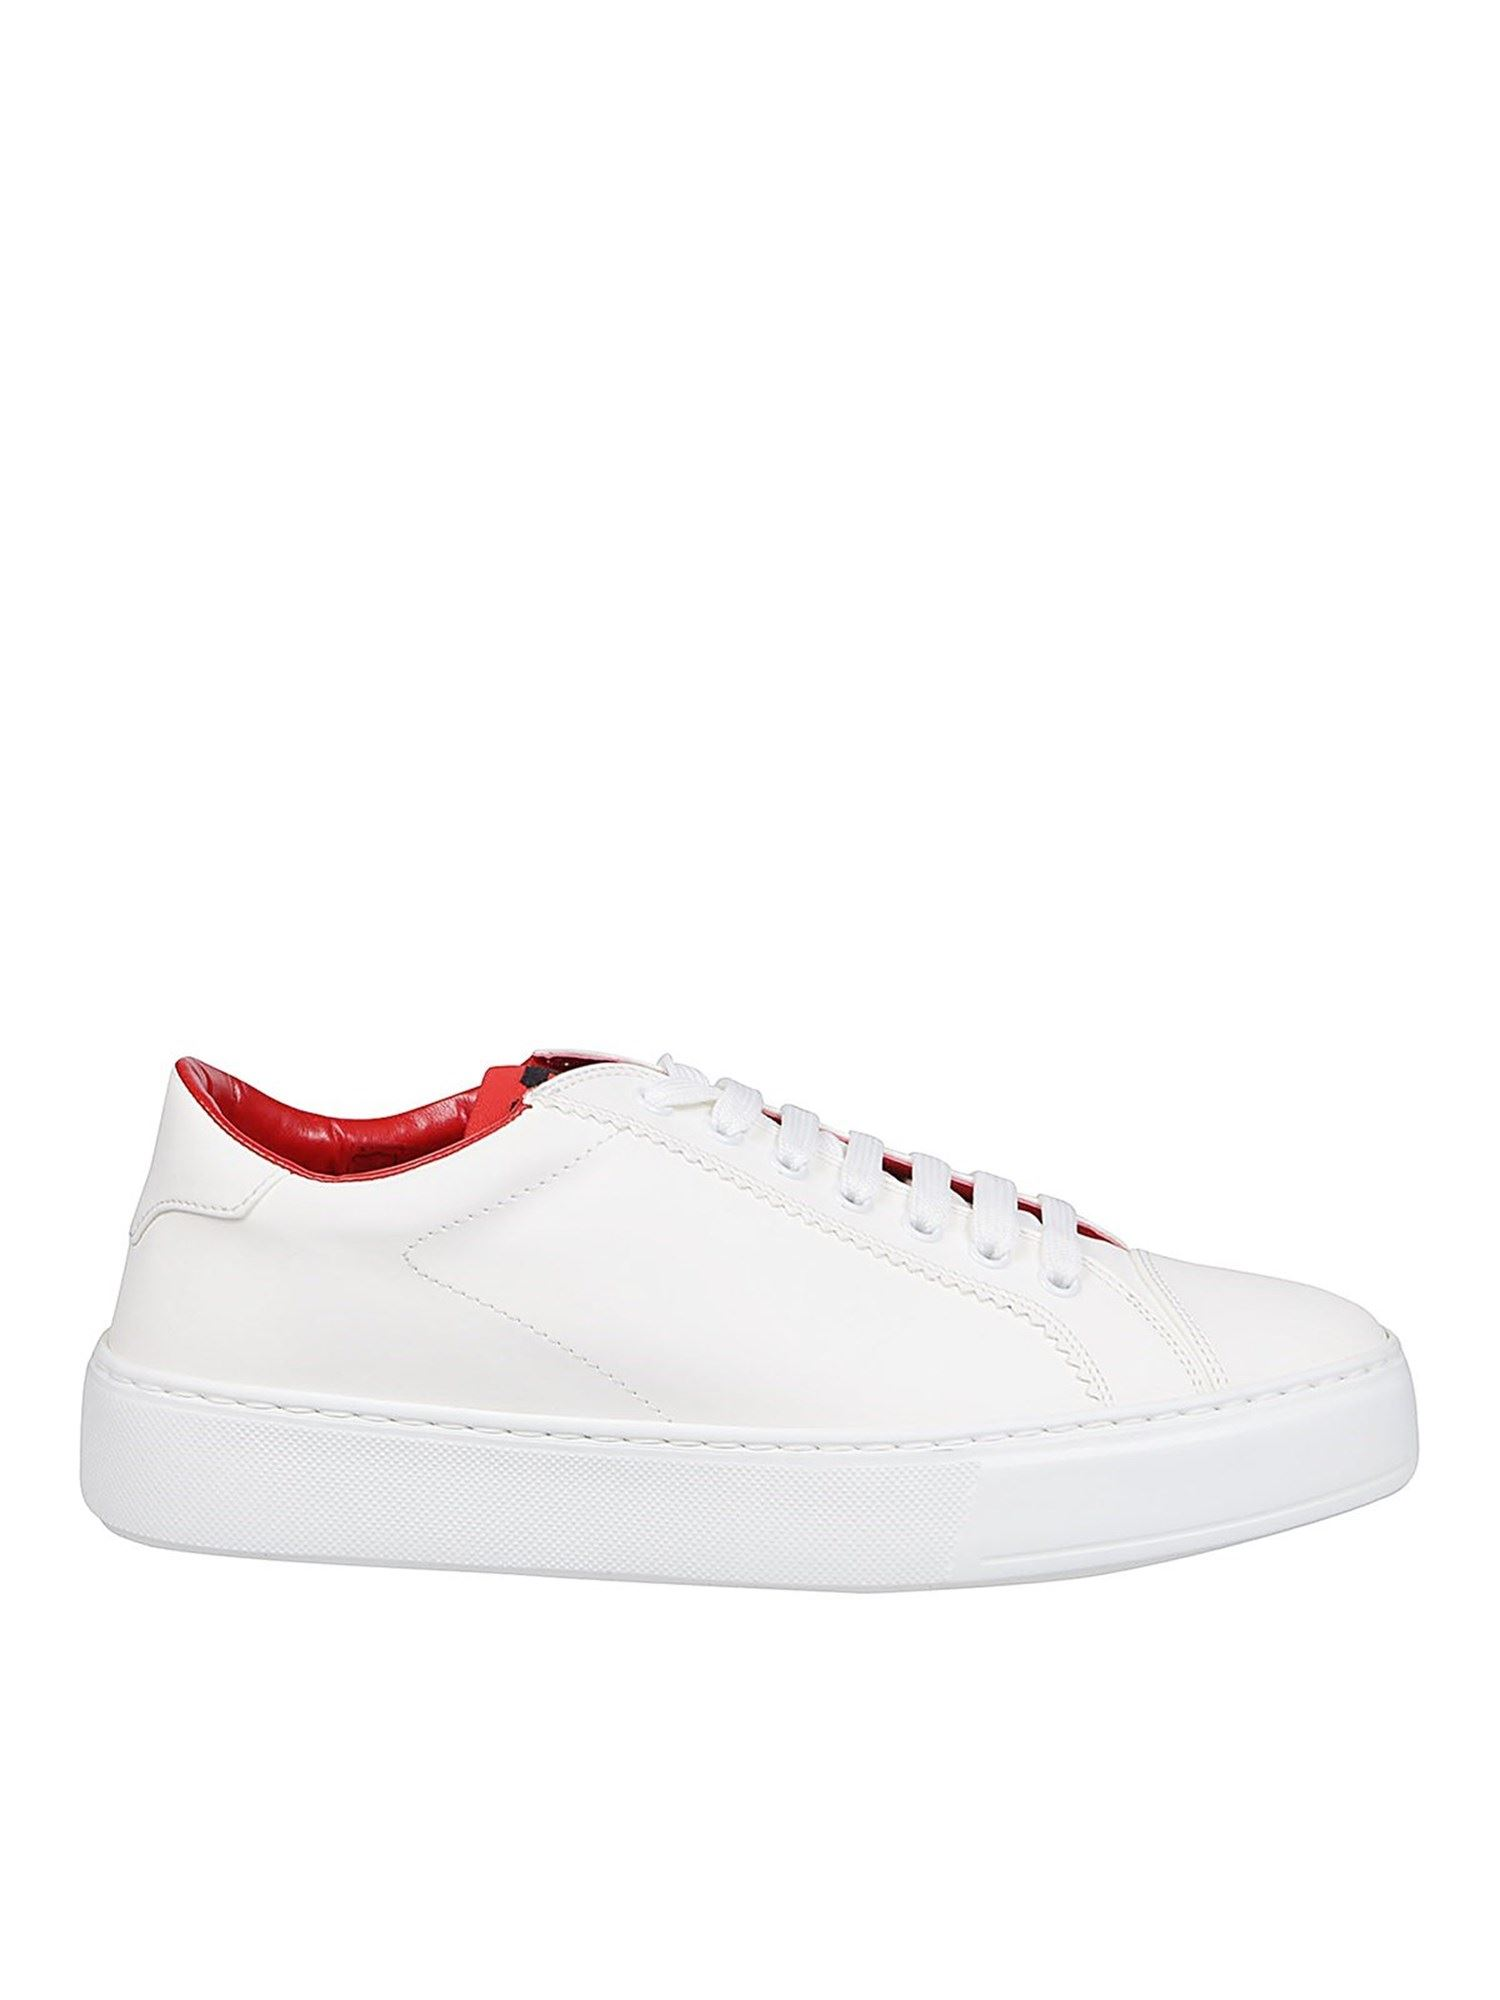 Gcds LEATHER SNEAKERS IN WHITE